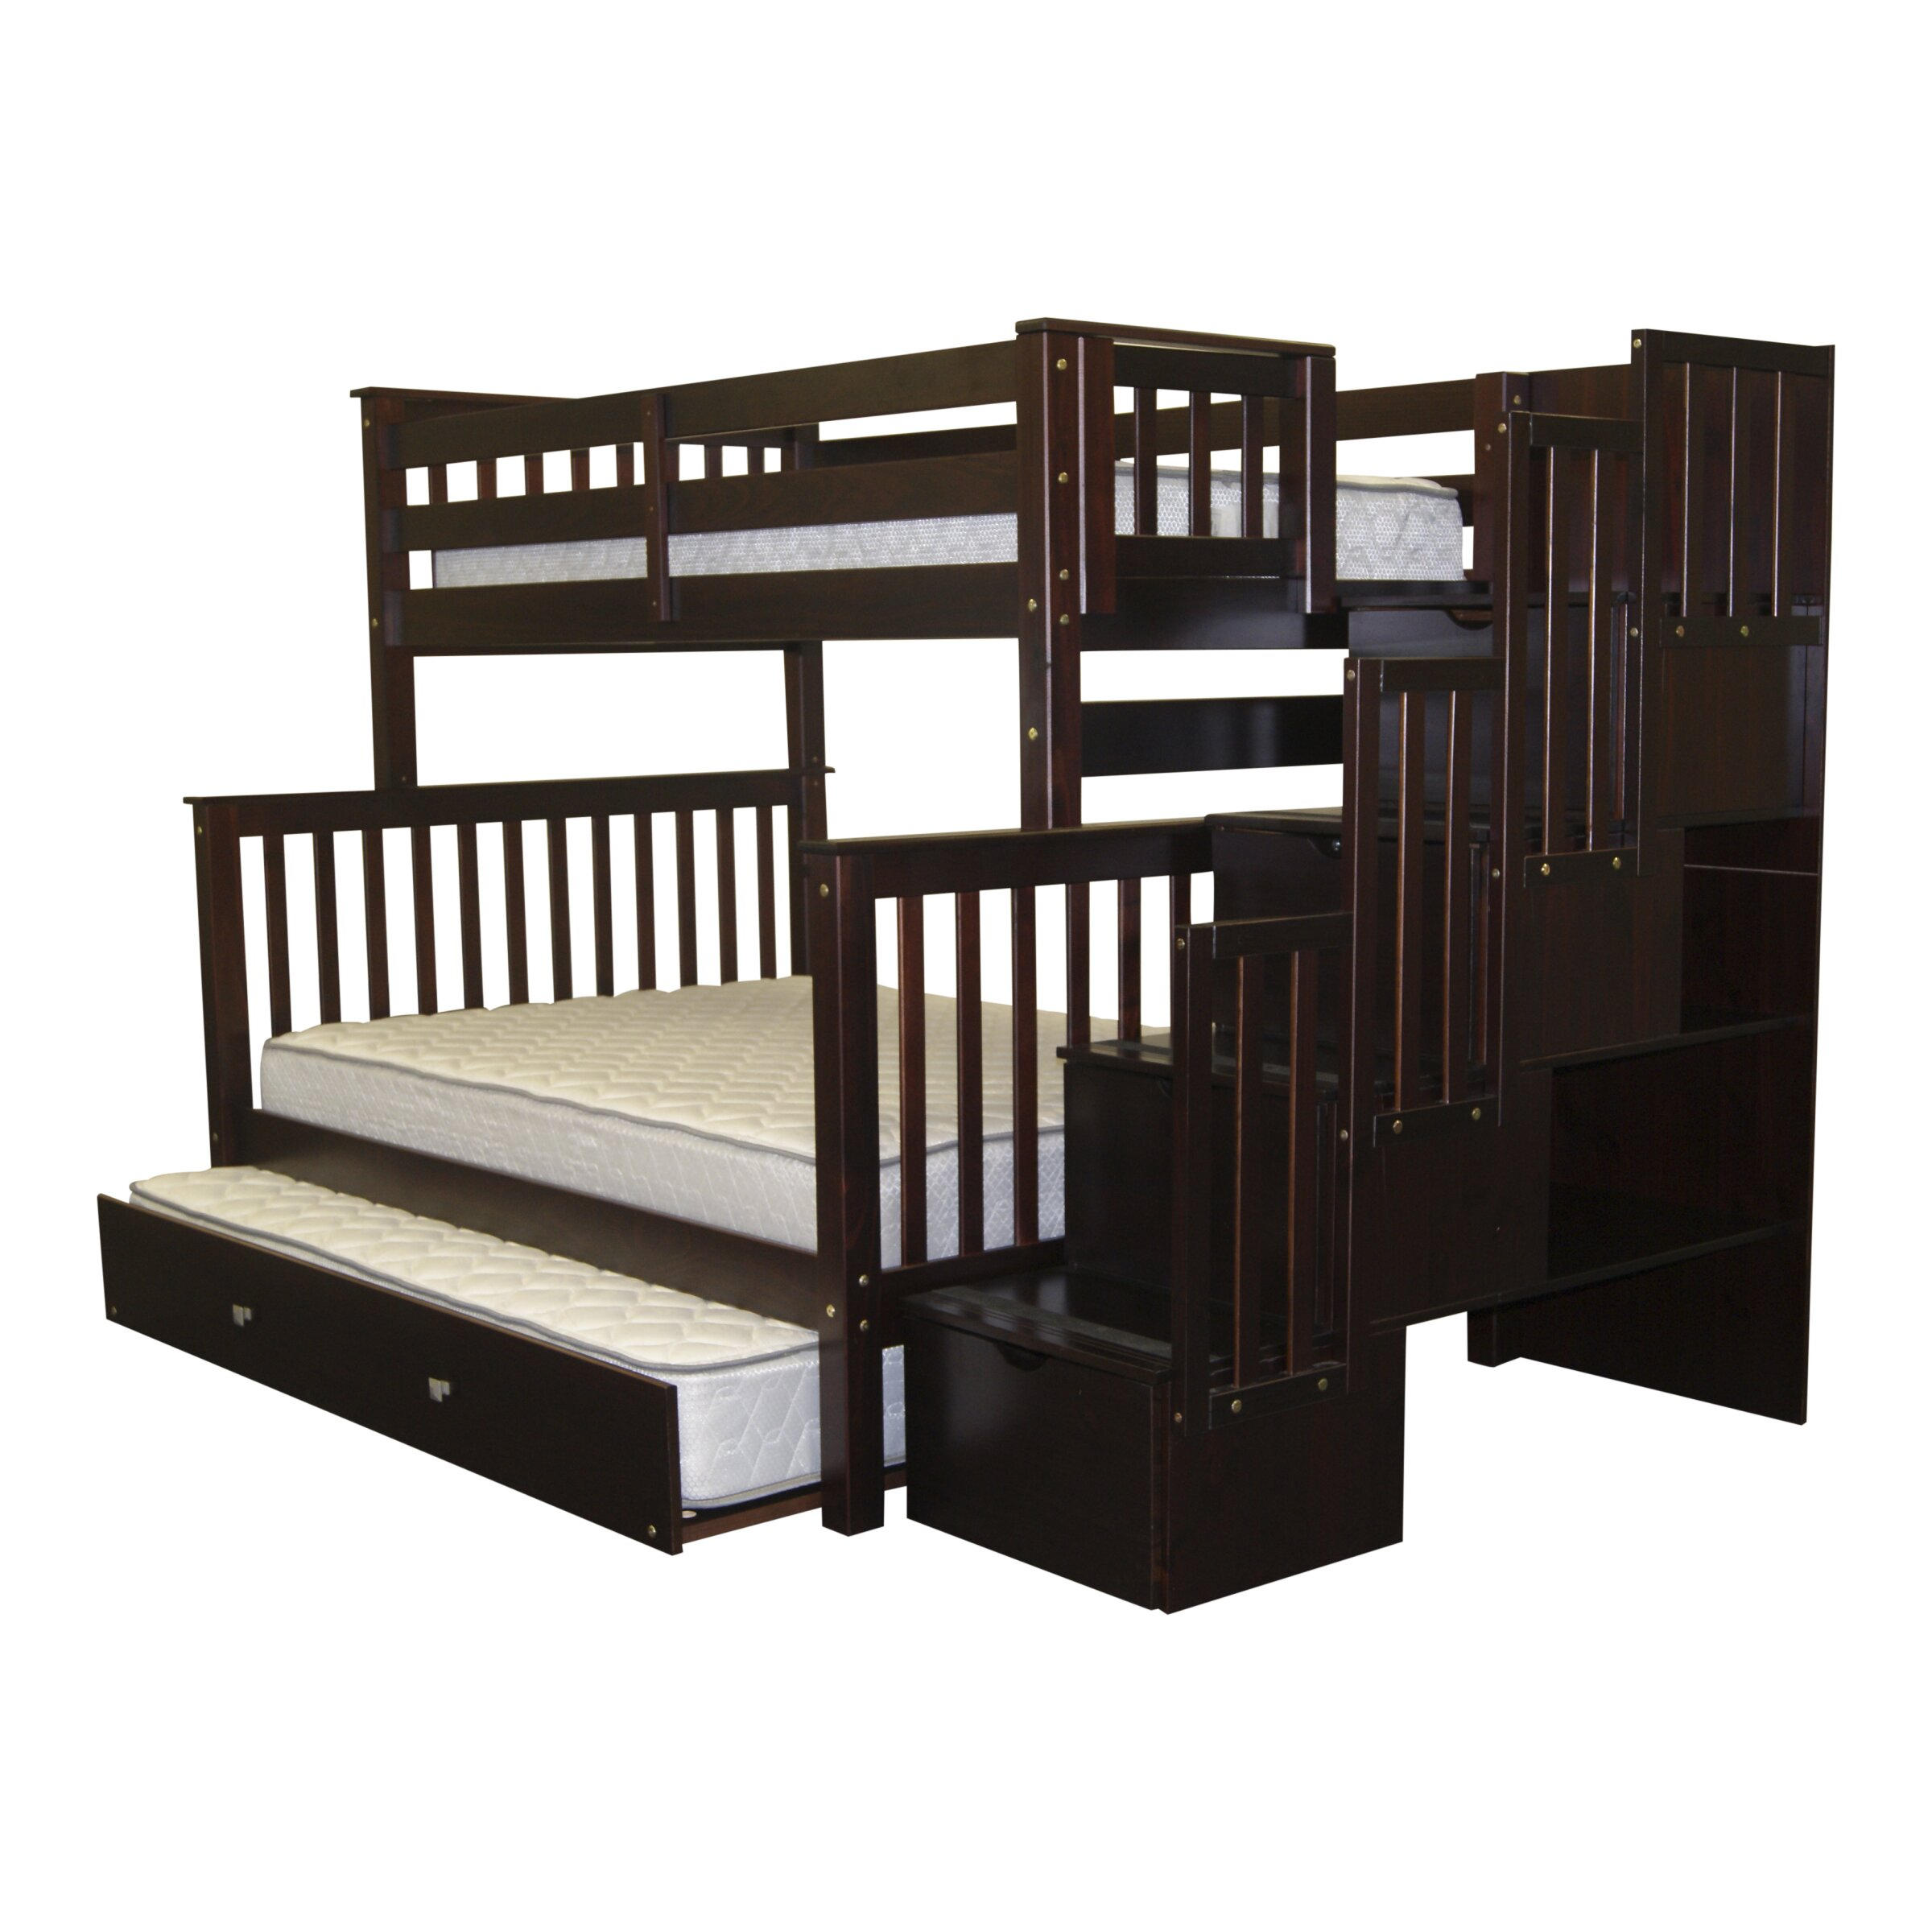 bedz king twin over full bunk bed with trundle reviews. Black Bedroom Furniture Sets. Home Design Ideas